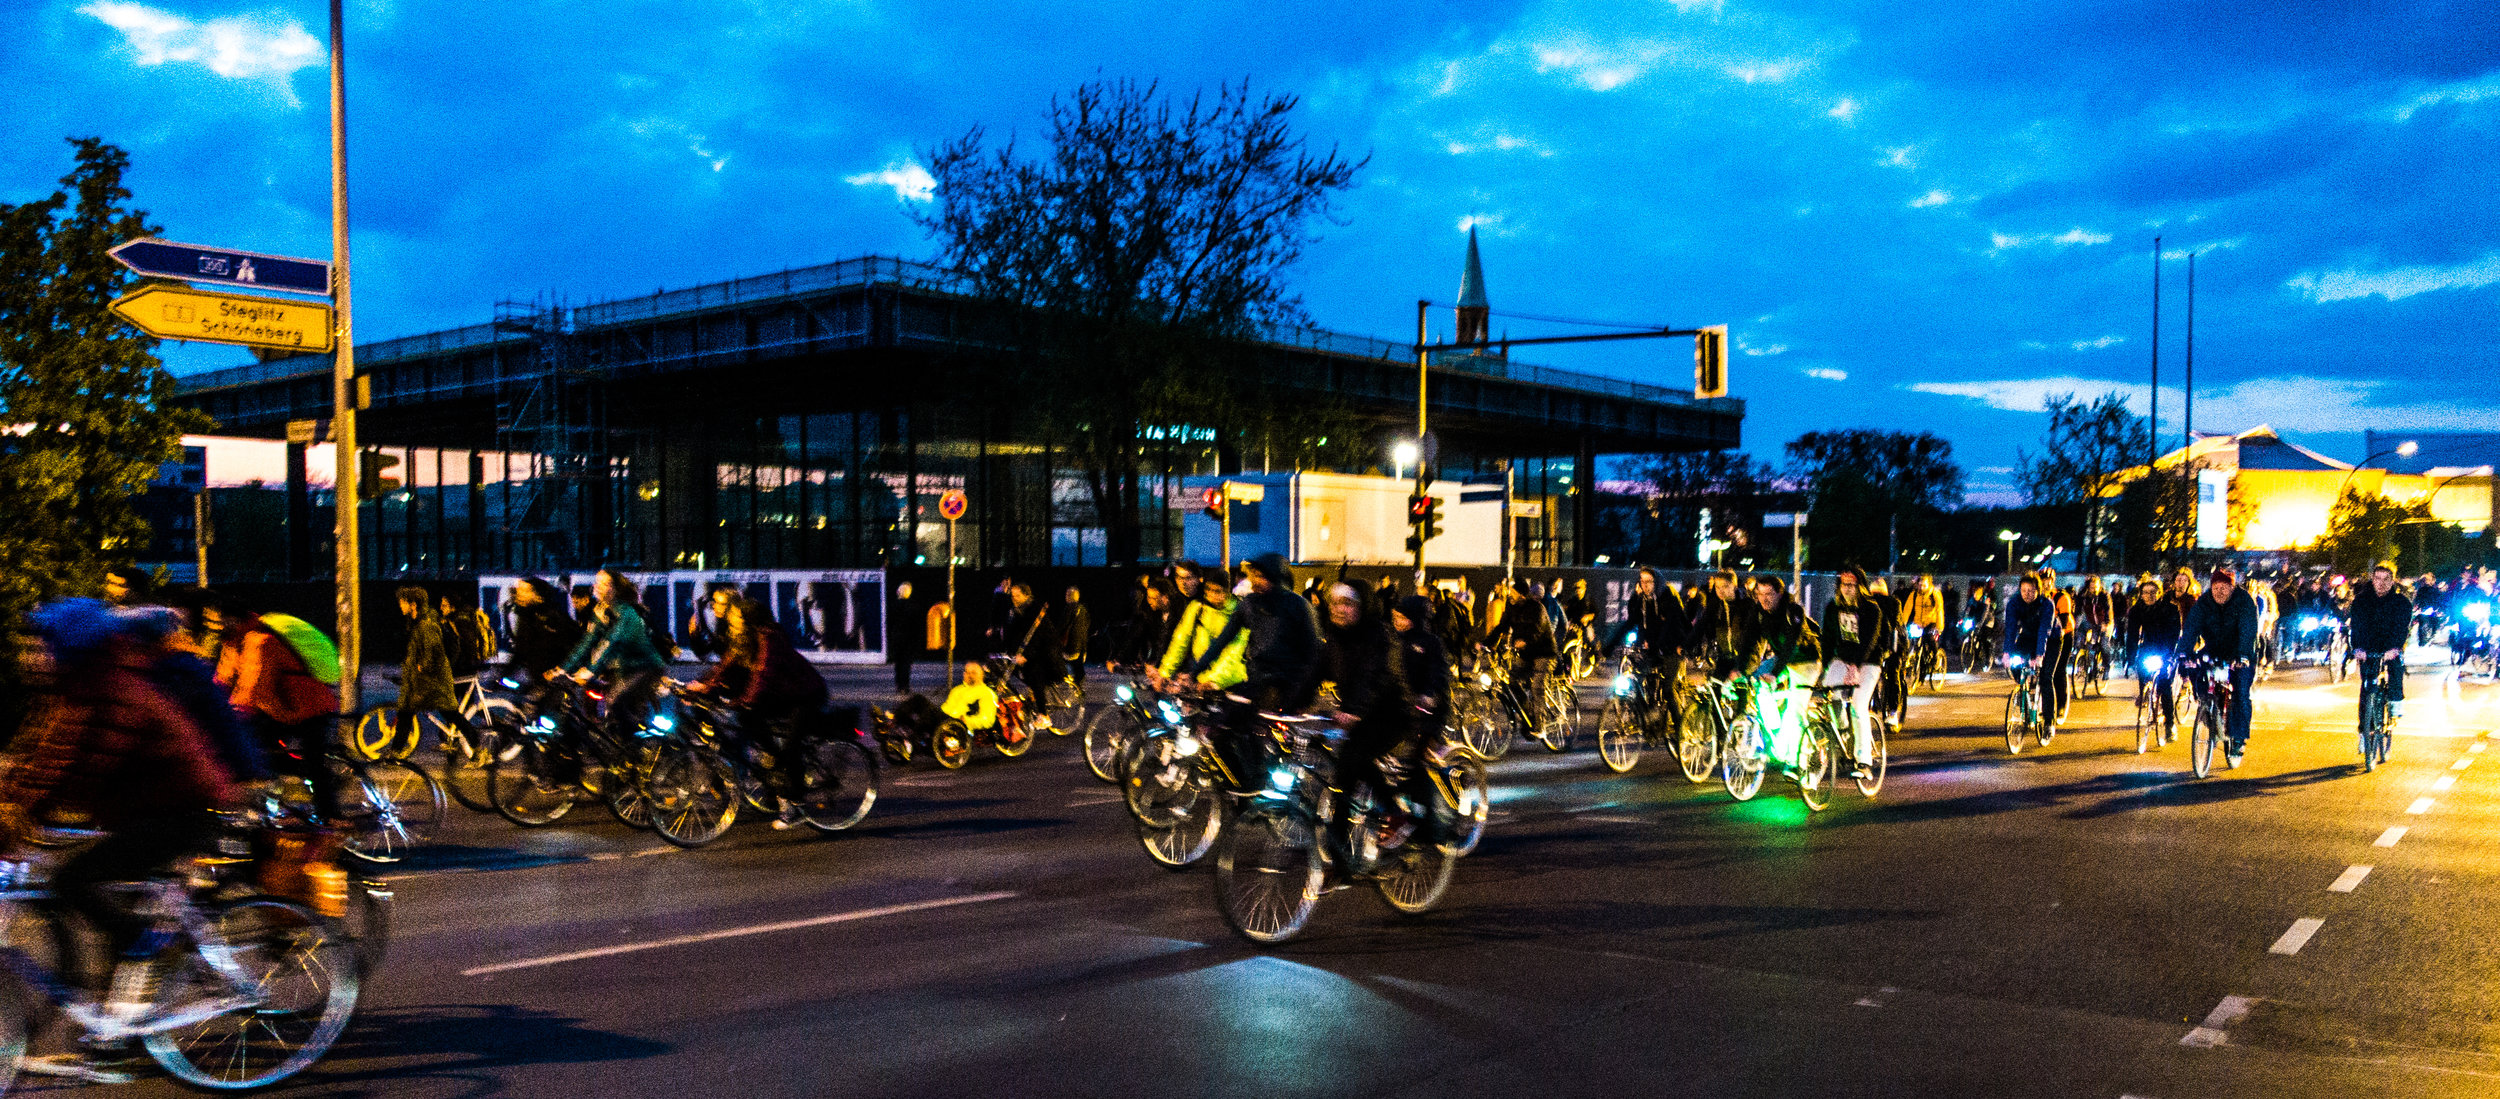 Critical Mass cycle reclaim the streets demonstration